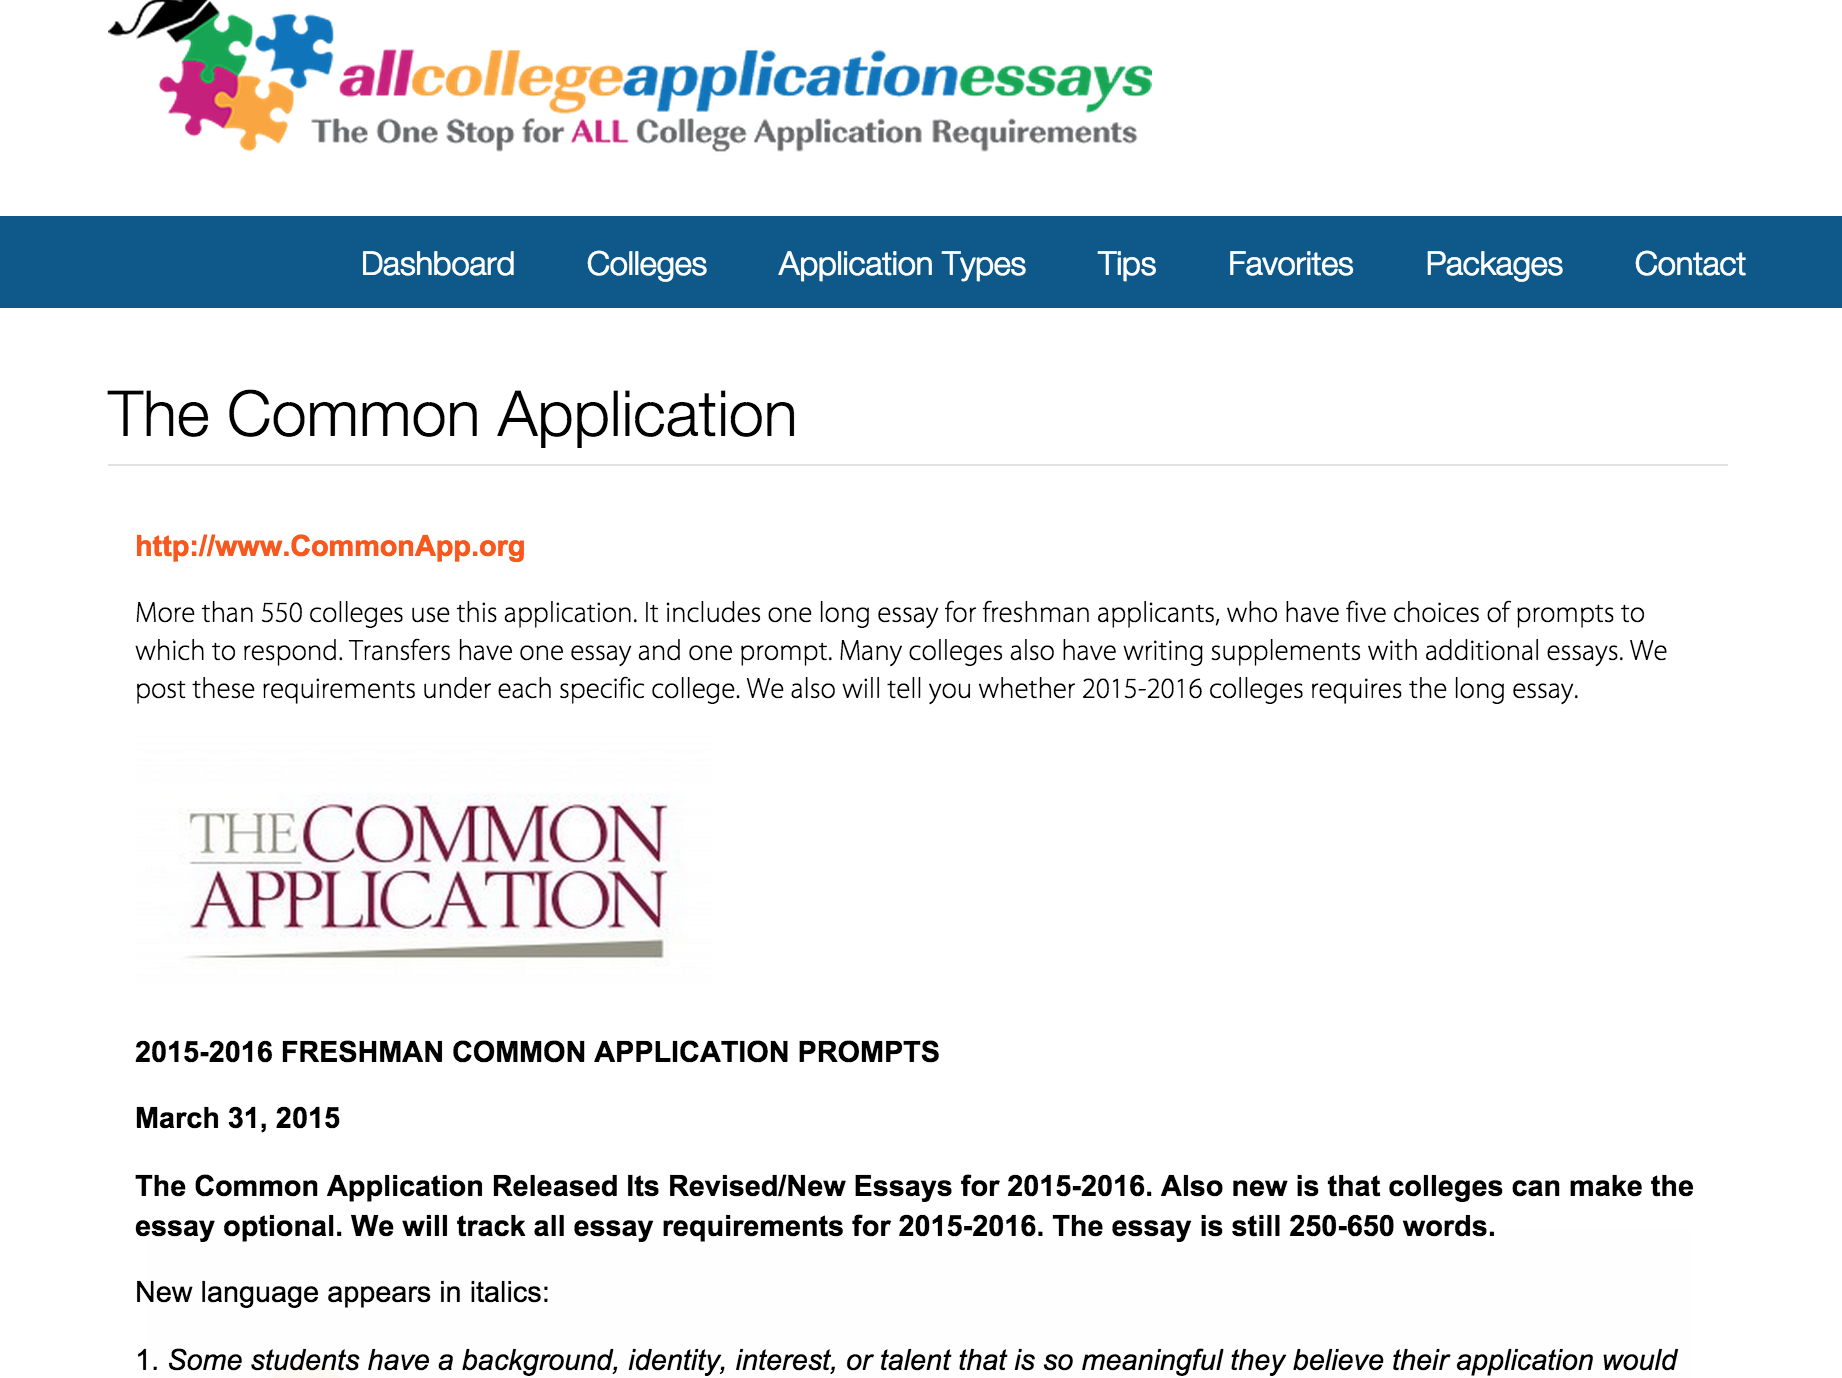 001 Common App Essay Prompts Essays And Commentary All College Topics Screen Shots Rare 2015-16 Full